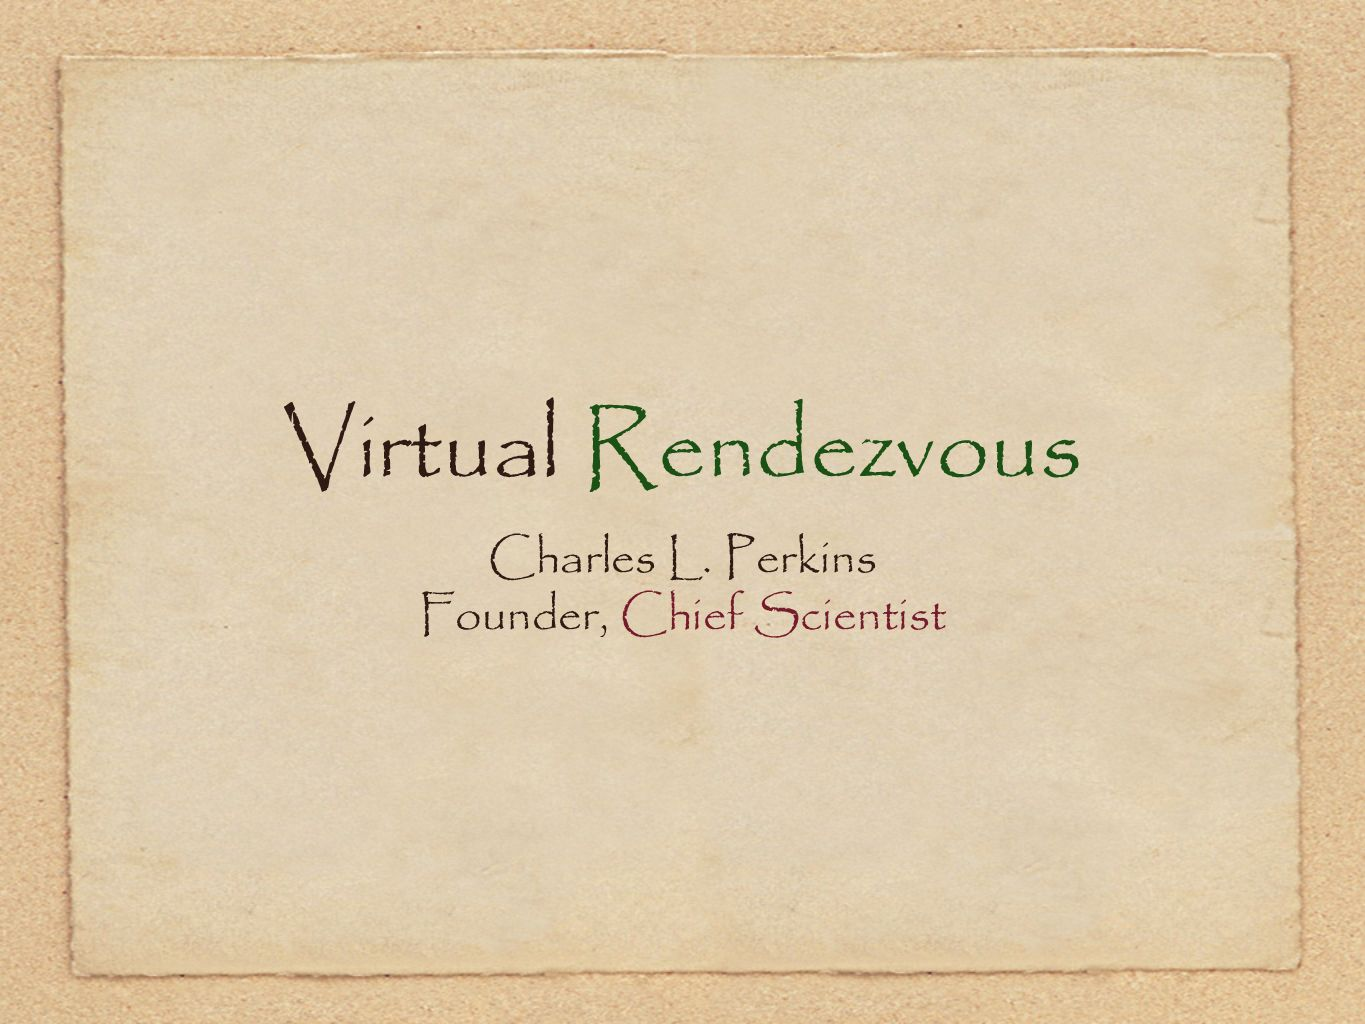 Founder, Chief Scientist